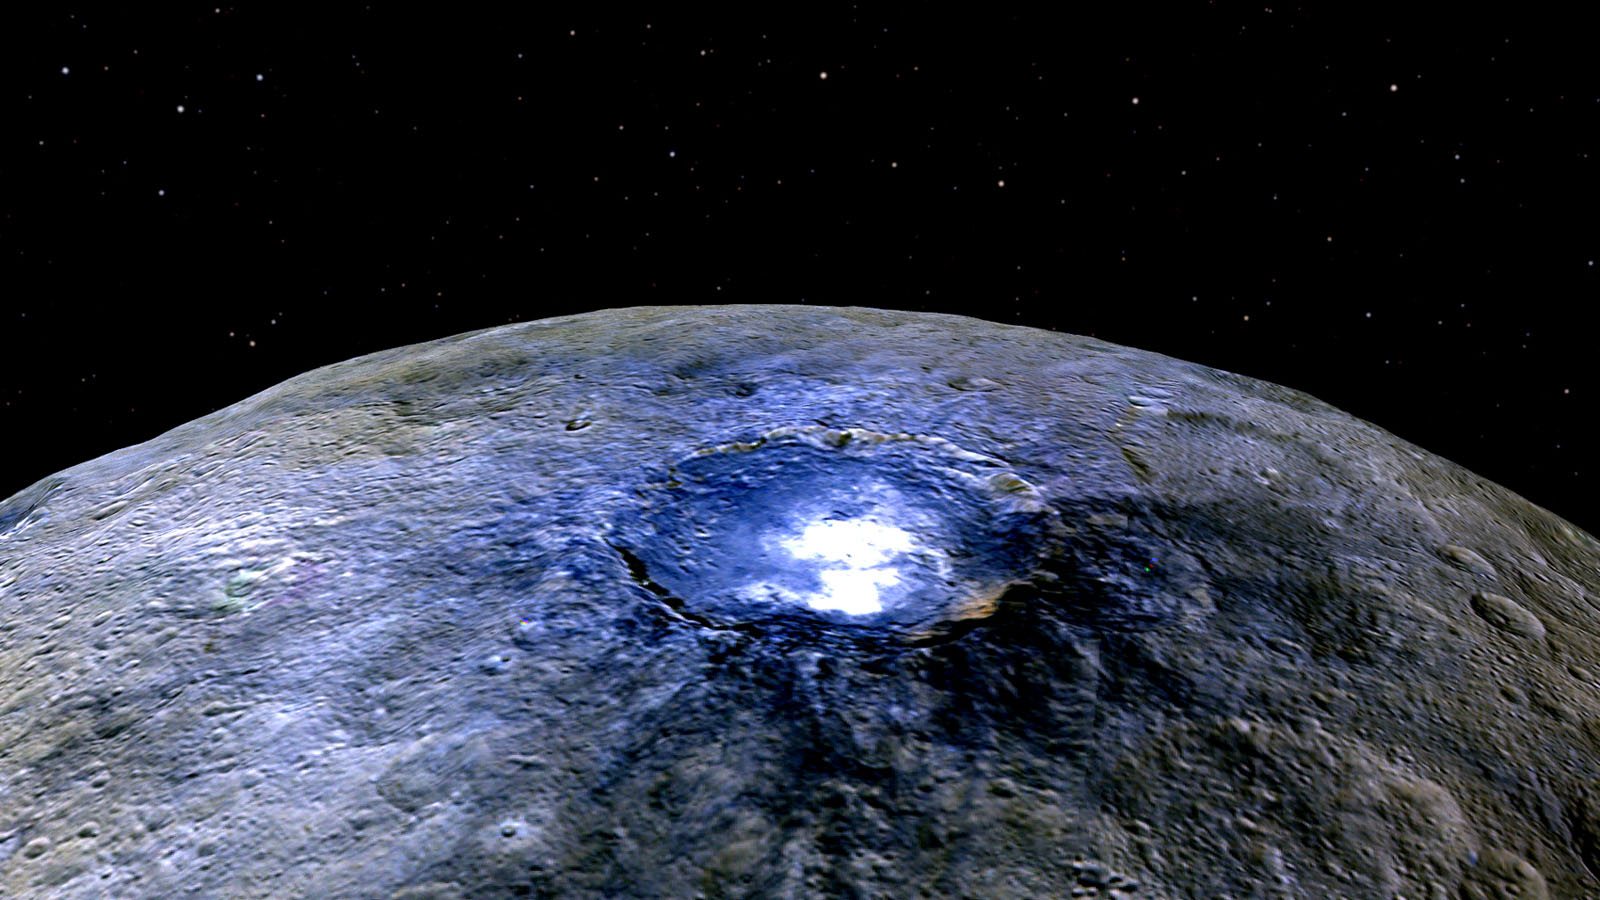 This false color image from NASA's Dawn spacecraft of Ceres' Occator Crater shows differences in surface composition. The color blue is generally associated with bright material seems to be consistent with salts, such as sulfates.